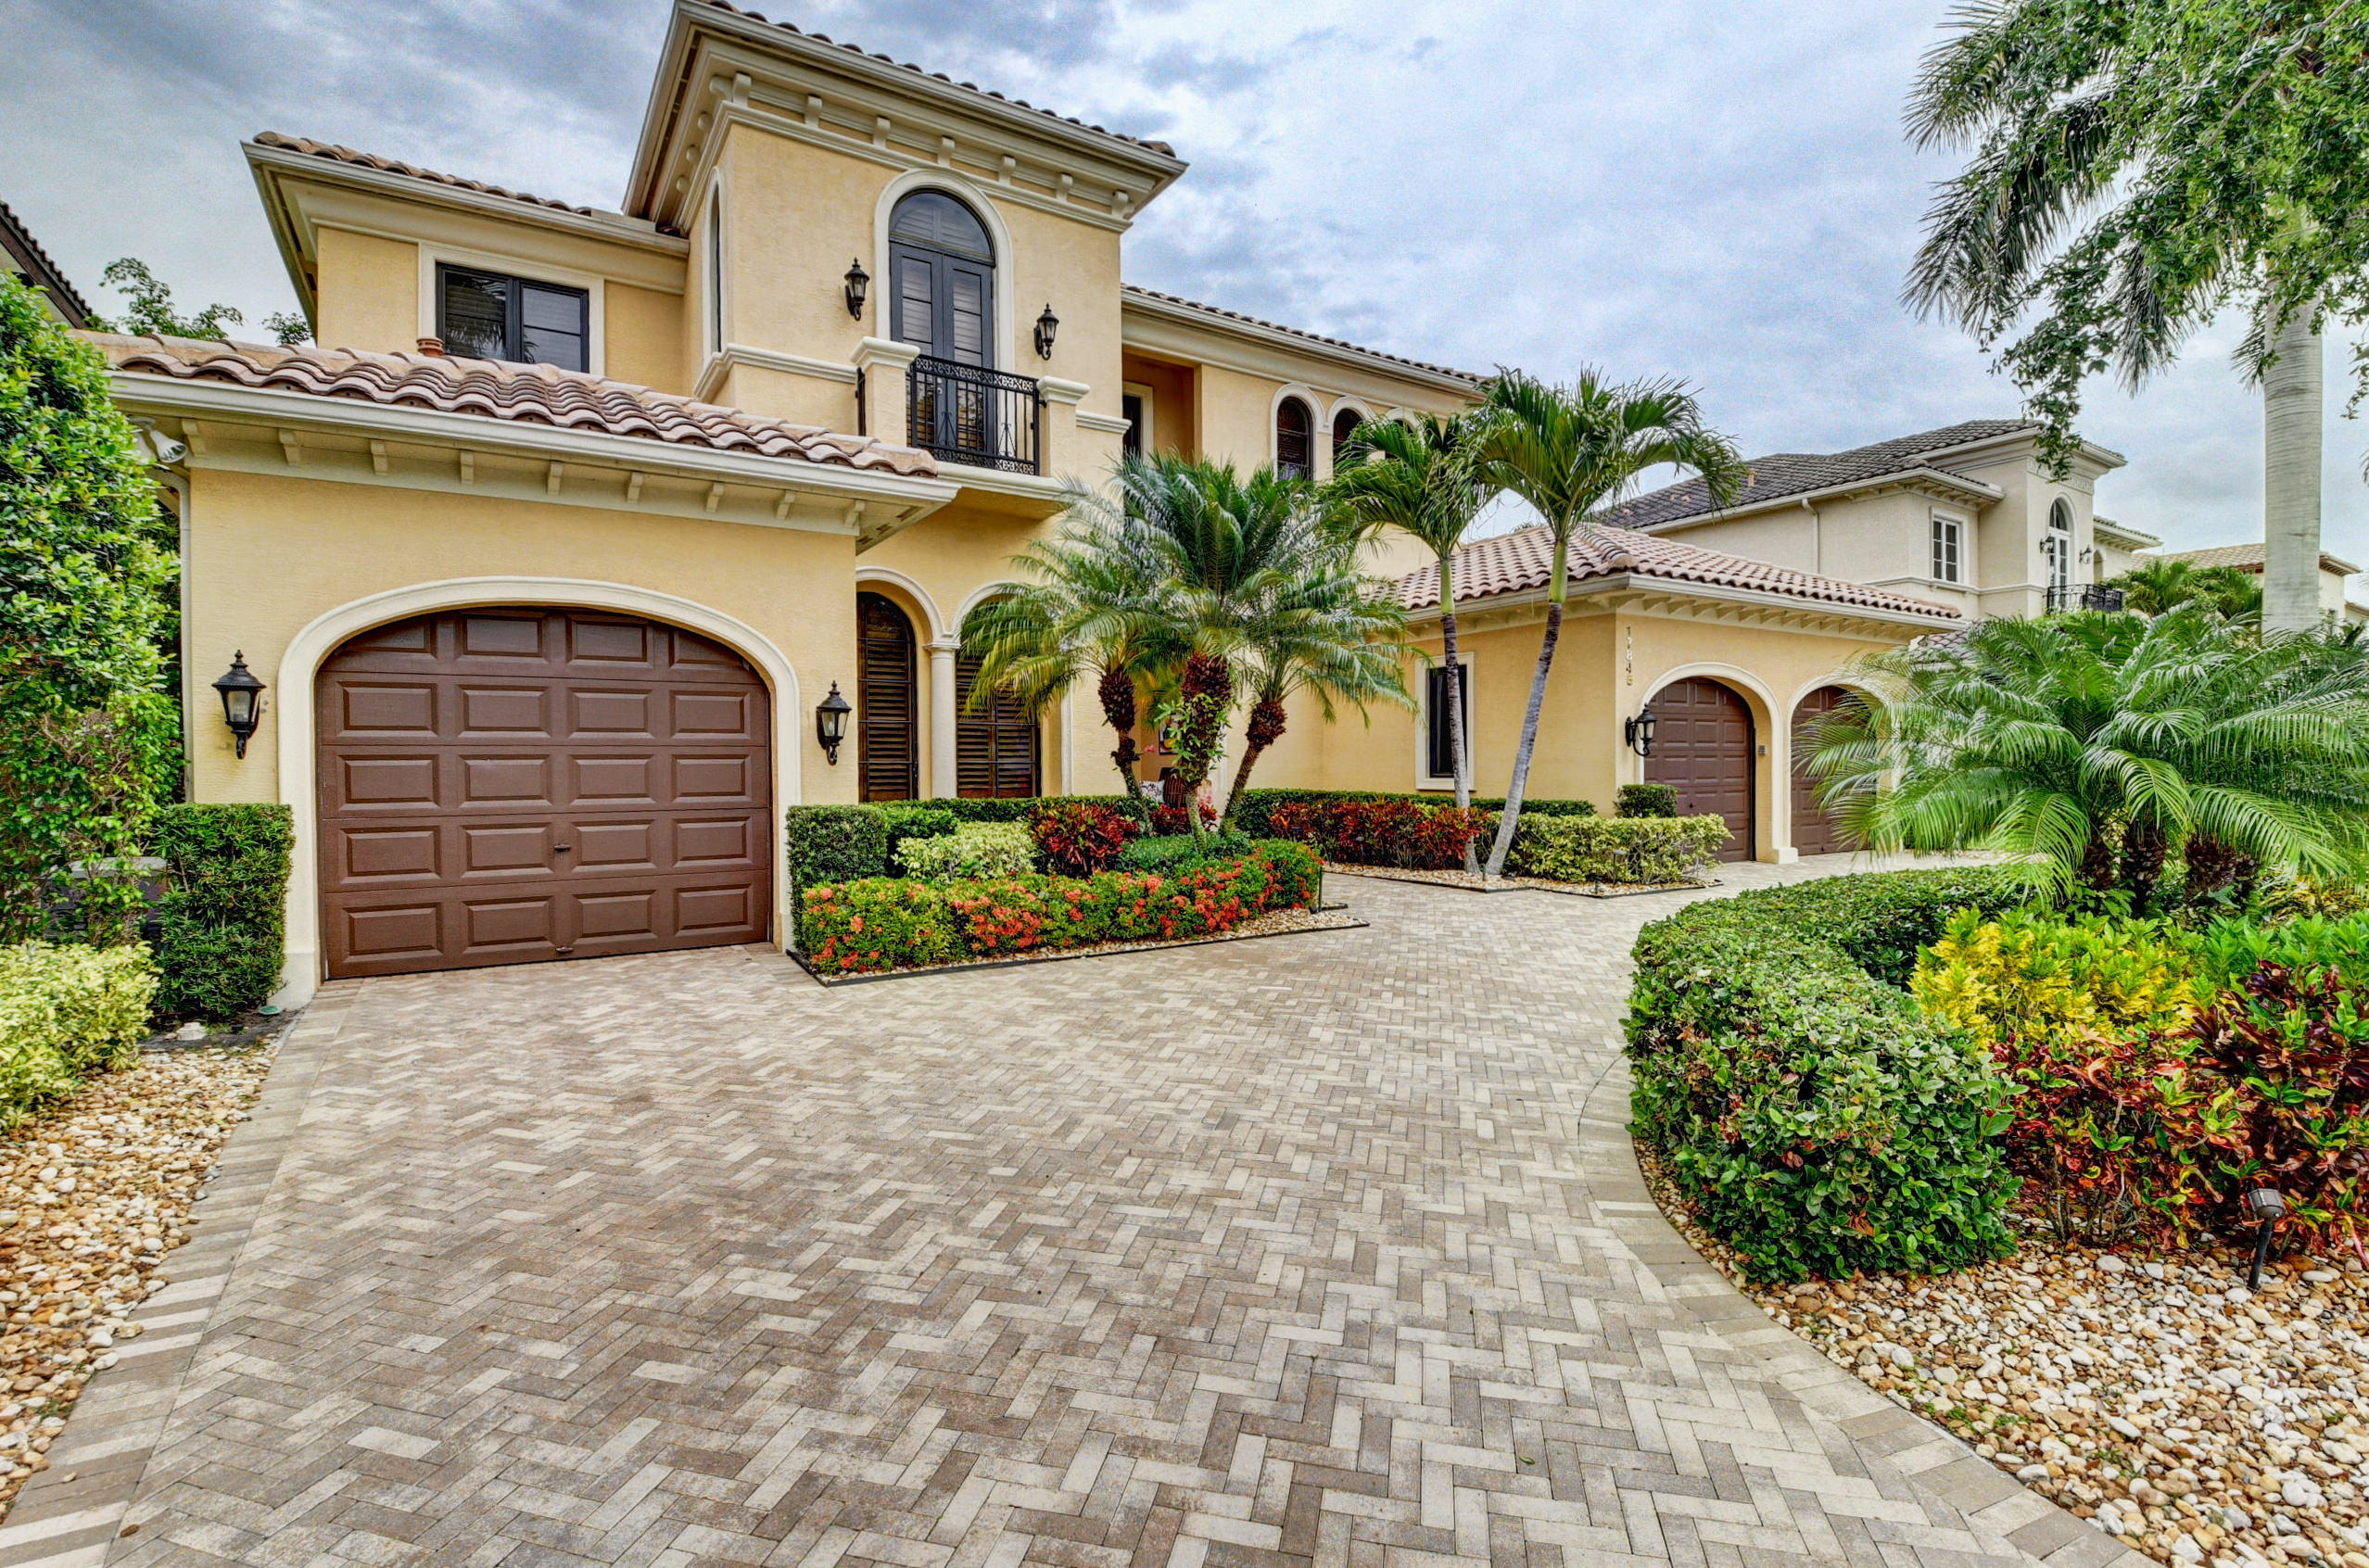 Home for sale in The Oaks Boca Raton Florida